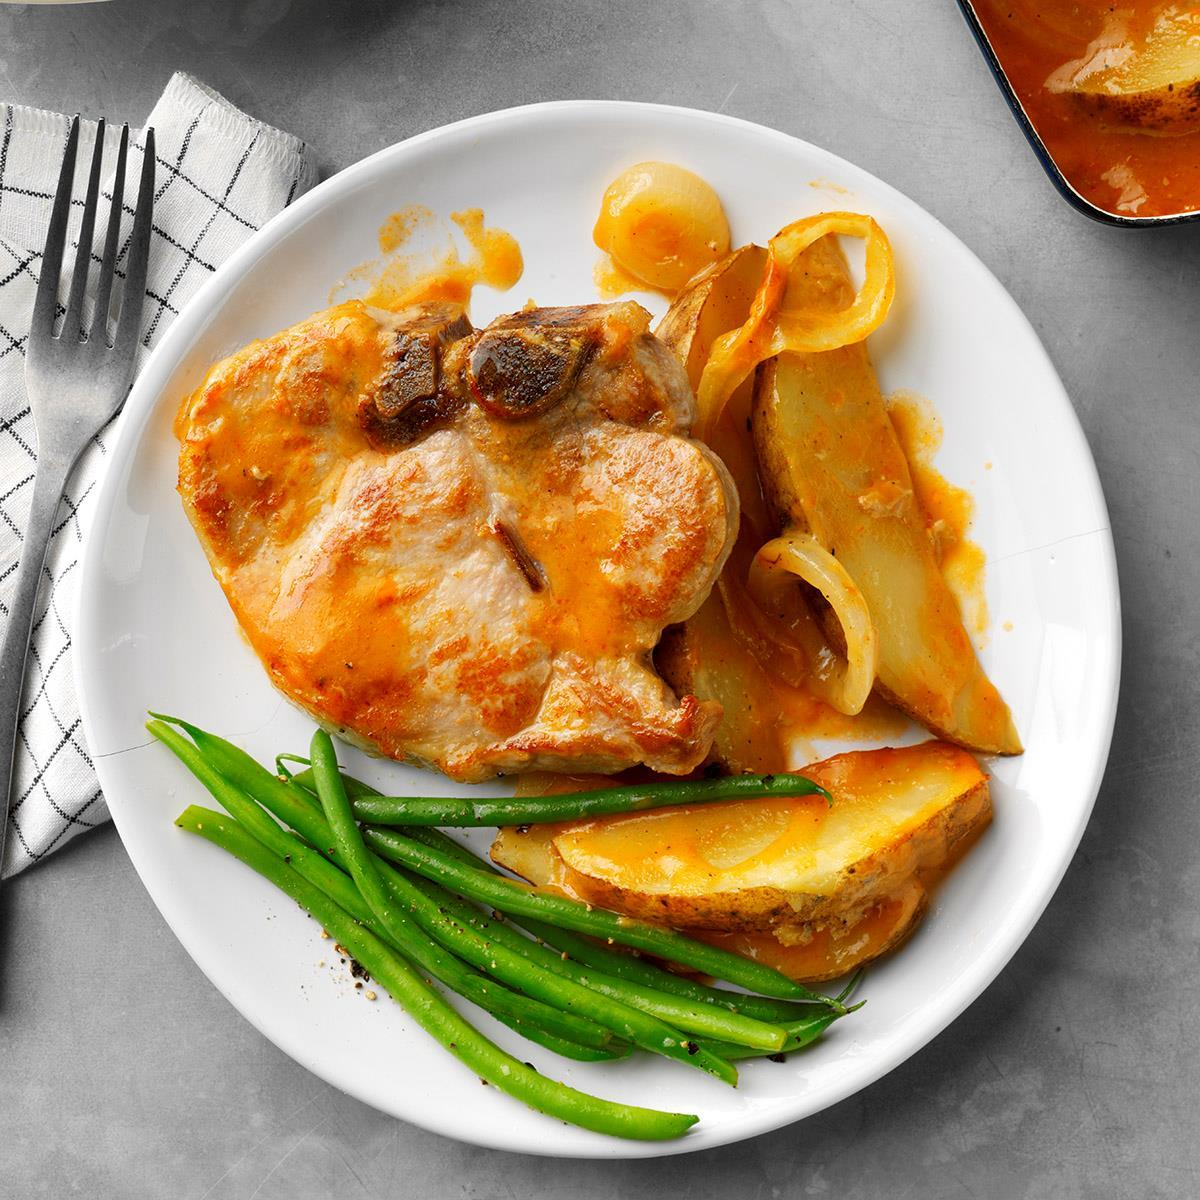 Great Pork Chop Bake